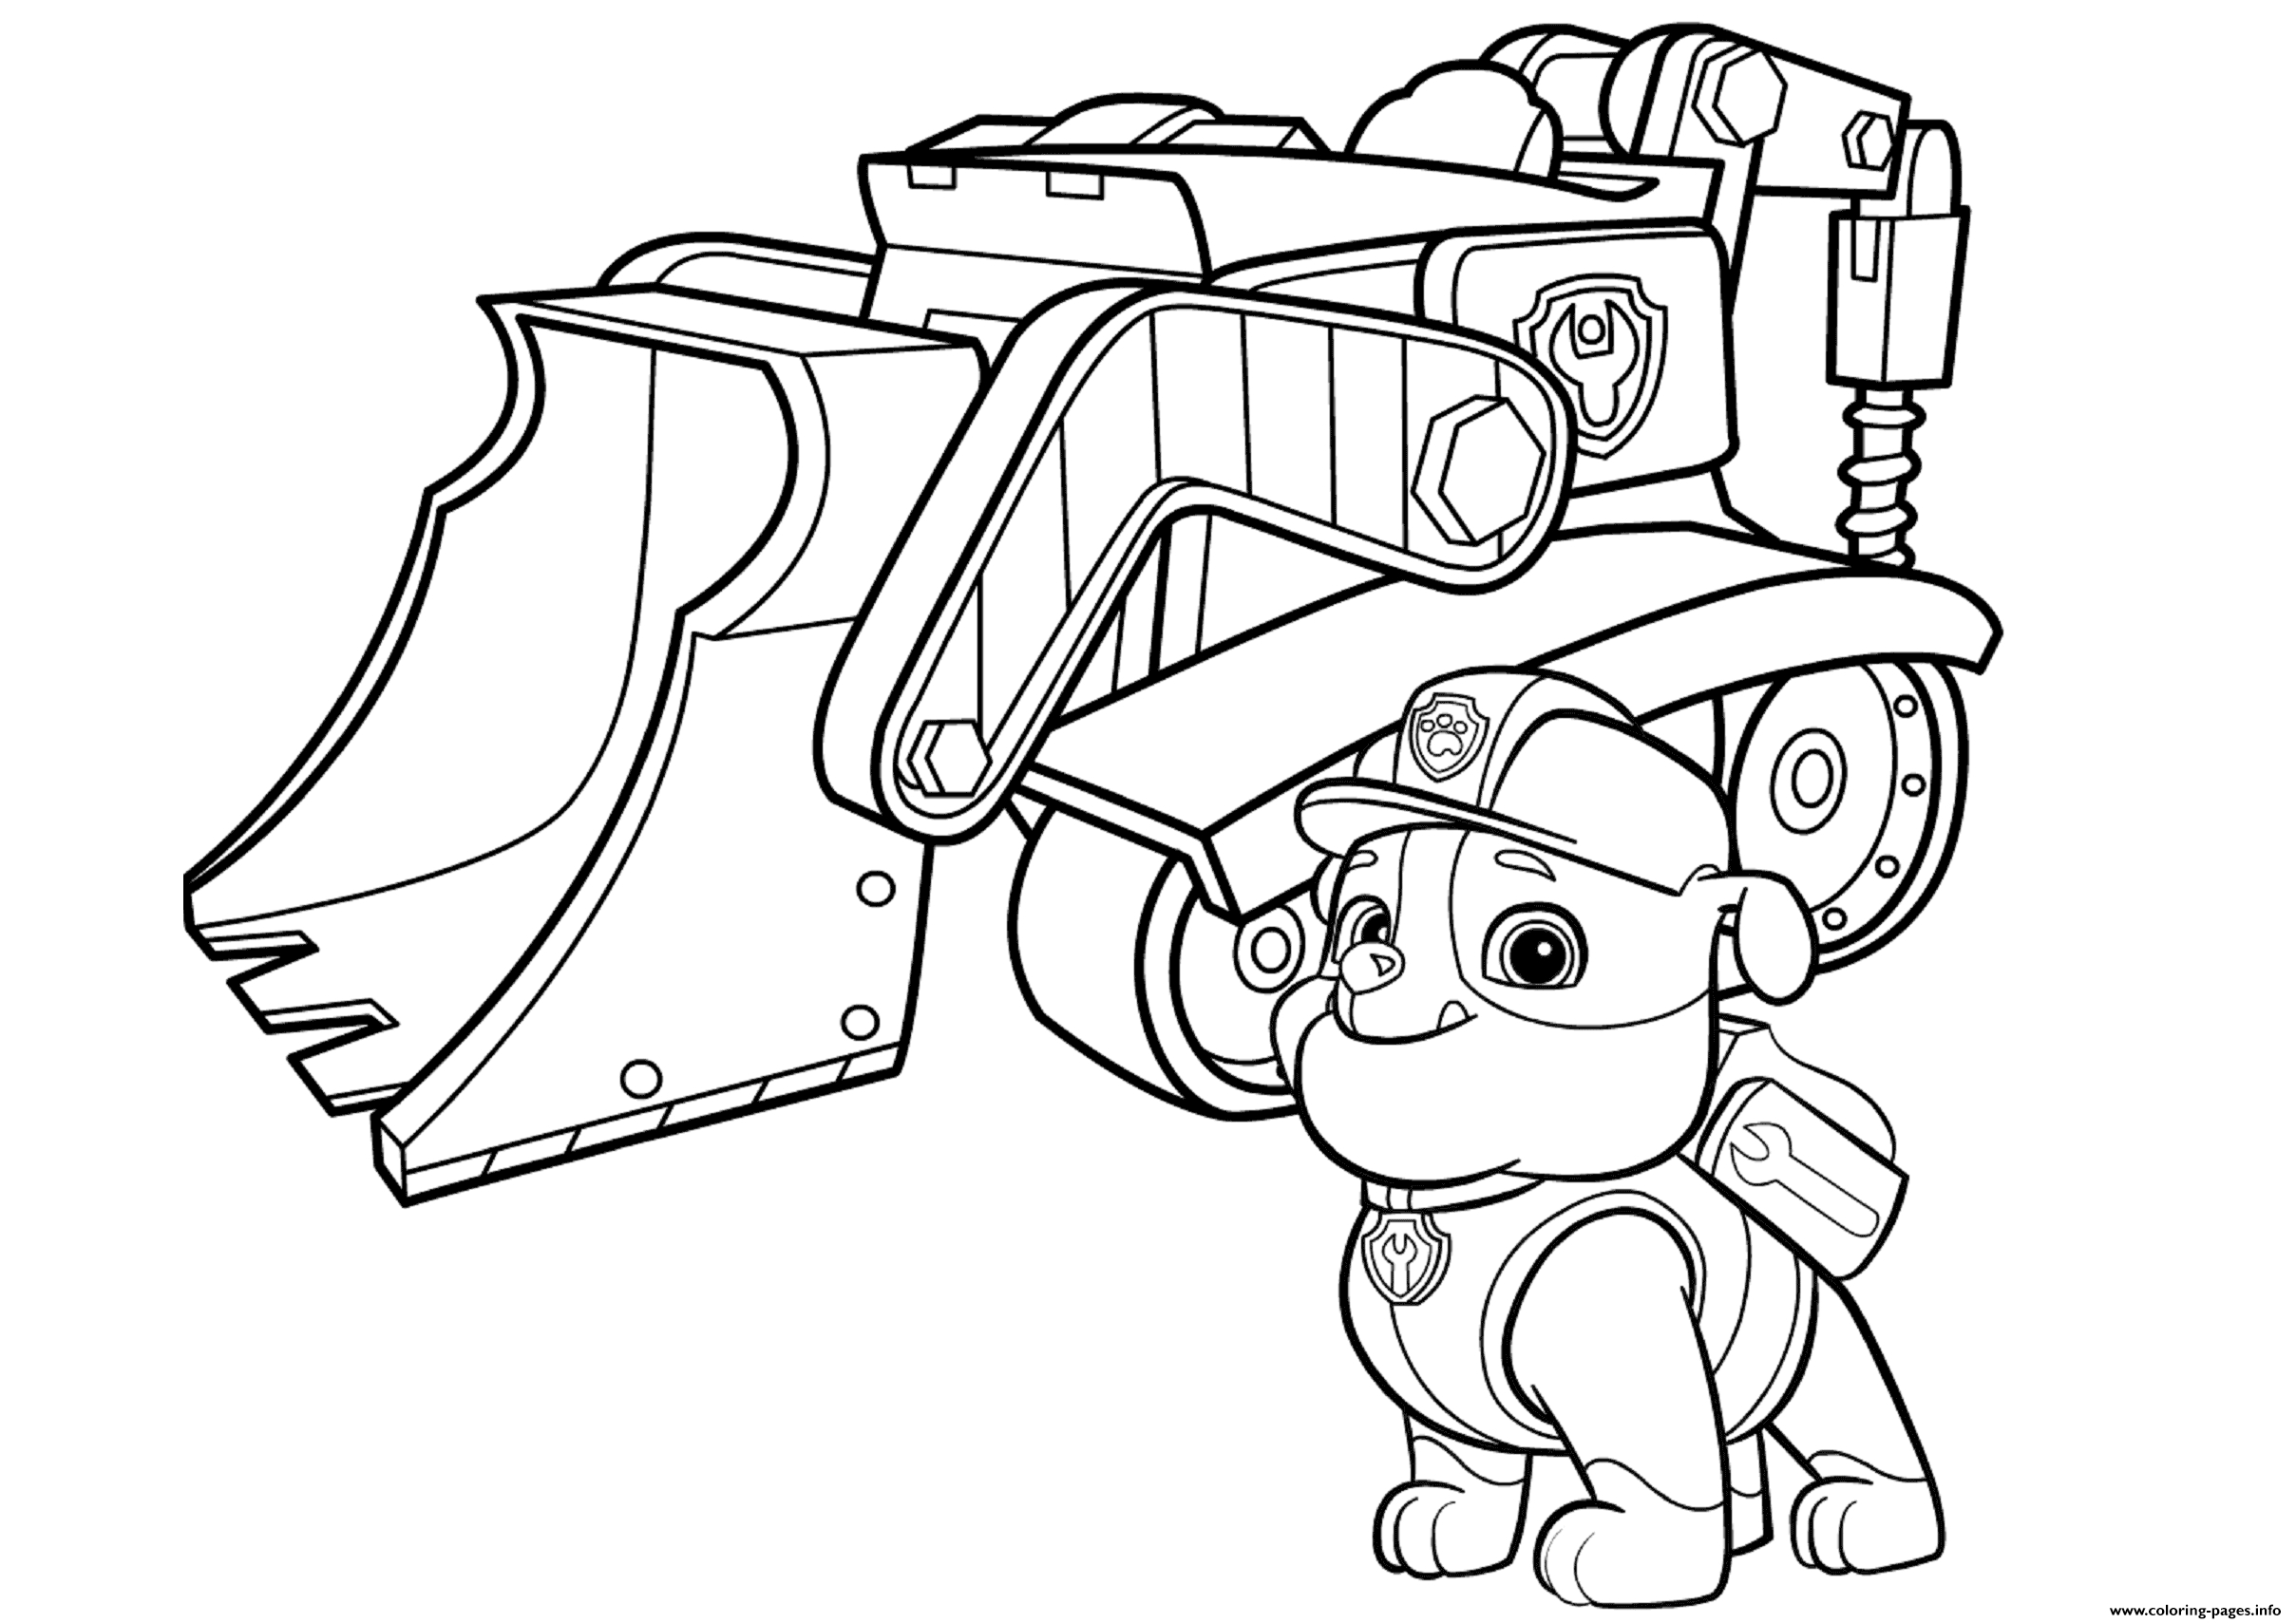 paw patrol coloring pages free paw patrol coloring pages